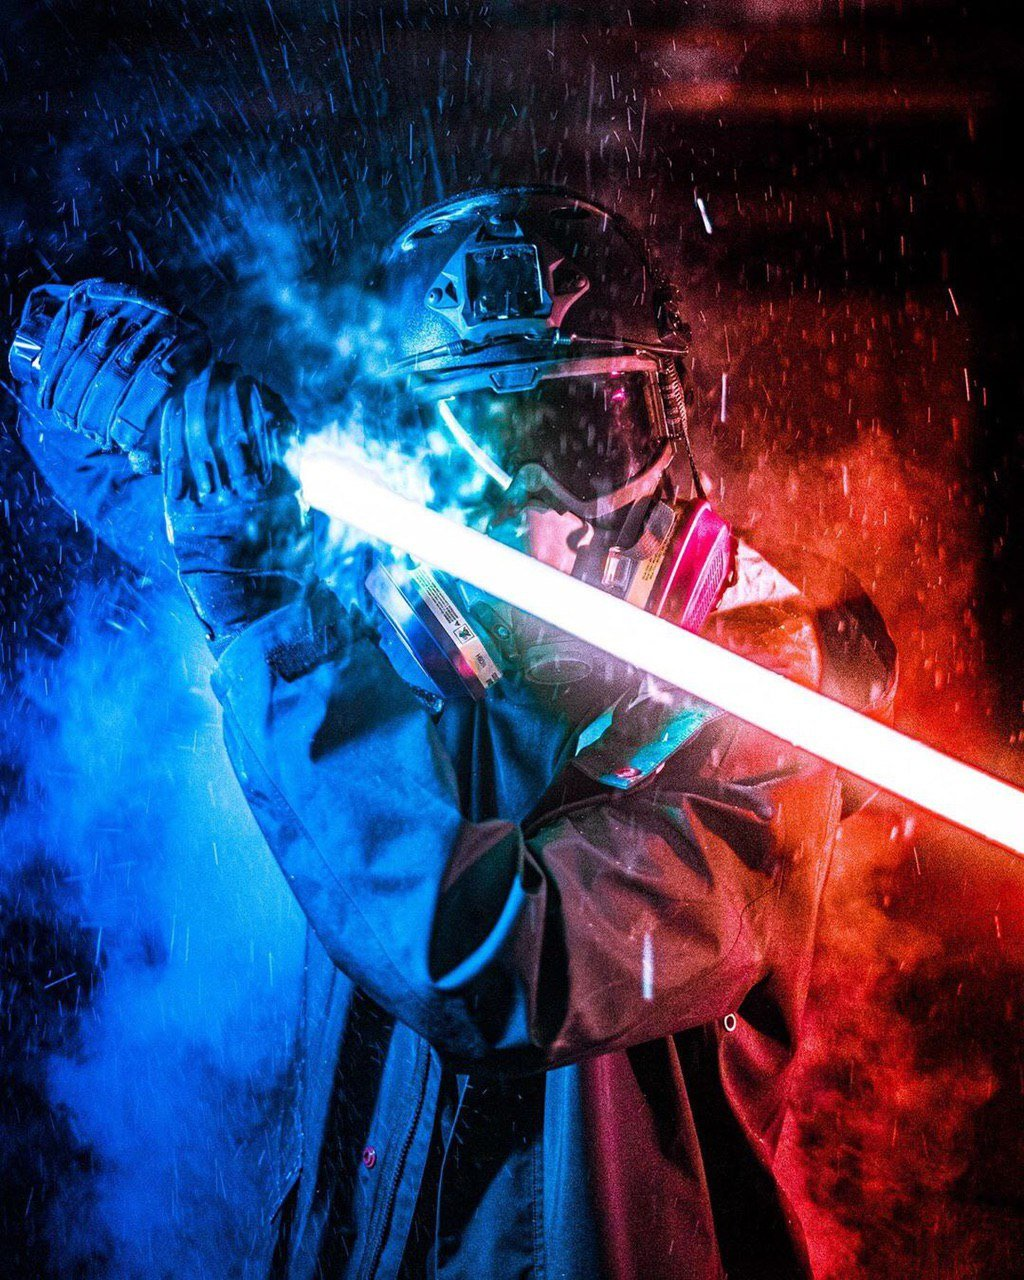 An edited photograph of a protestor in helmet, ballistic goggles and half-face respirator. They are wearing heavy-duty gloves and wielding a lightsaber. The protestor is standing in the rain against a smoky backdrop. The left side of the image is lit up in blue, while the right-hand side is in red.